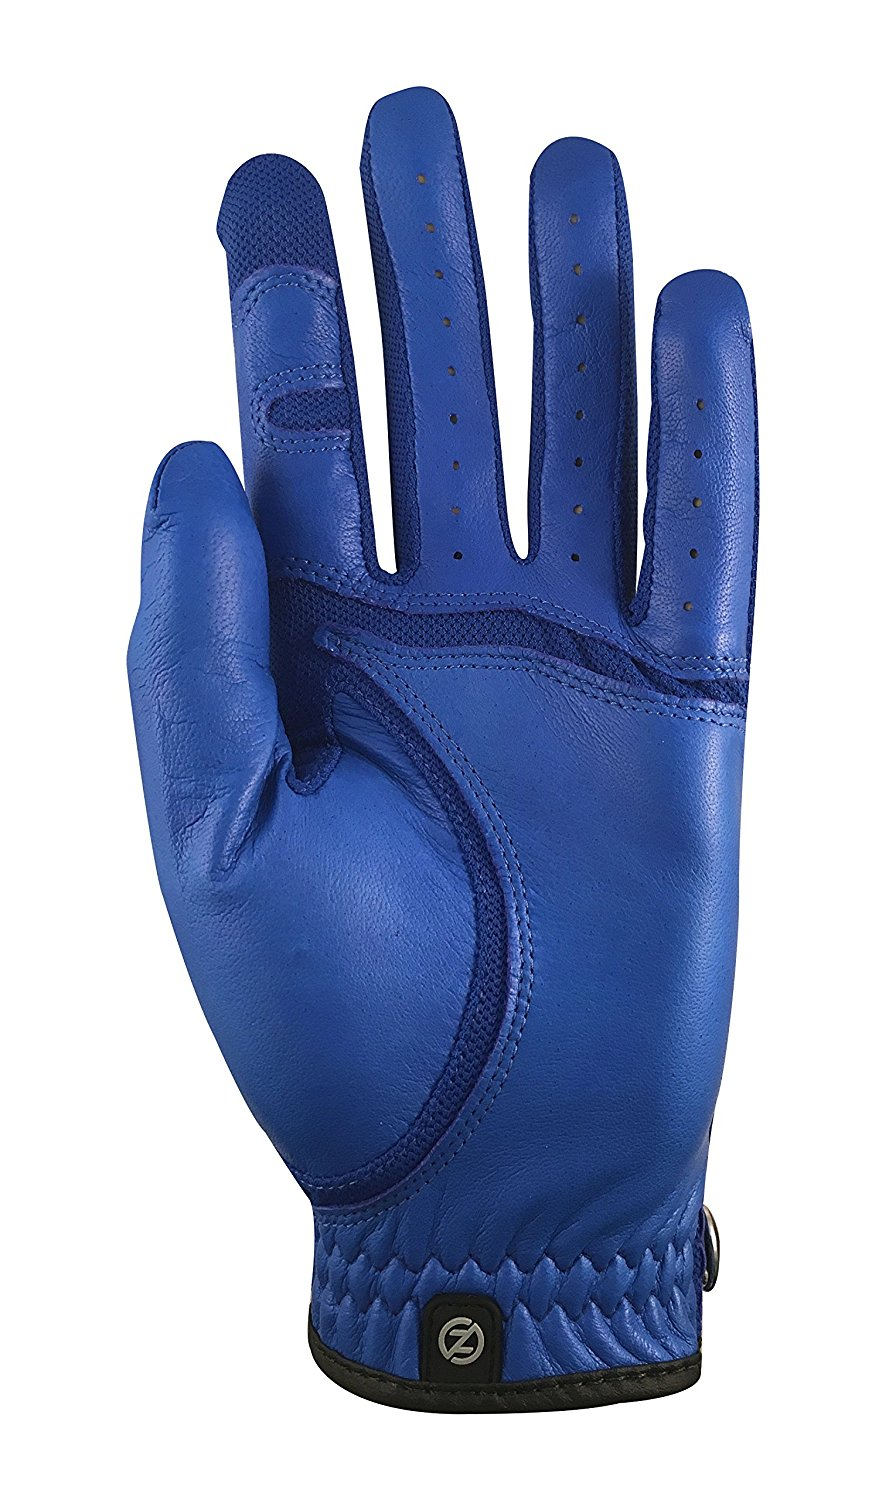 Zero-Friction-Cabretta-Leather-Elite-Mens-Golf-Gloves-One-Size-LH-Pick-Color thumbnail 5